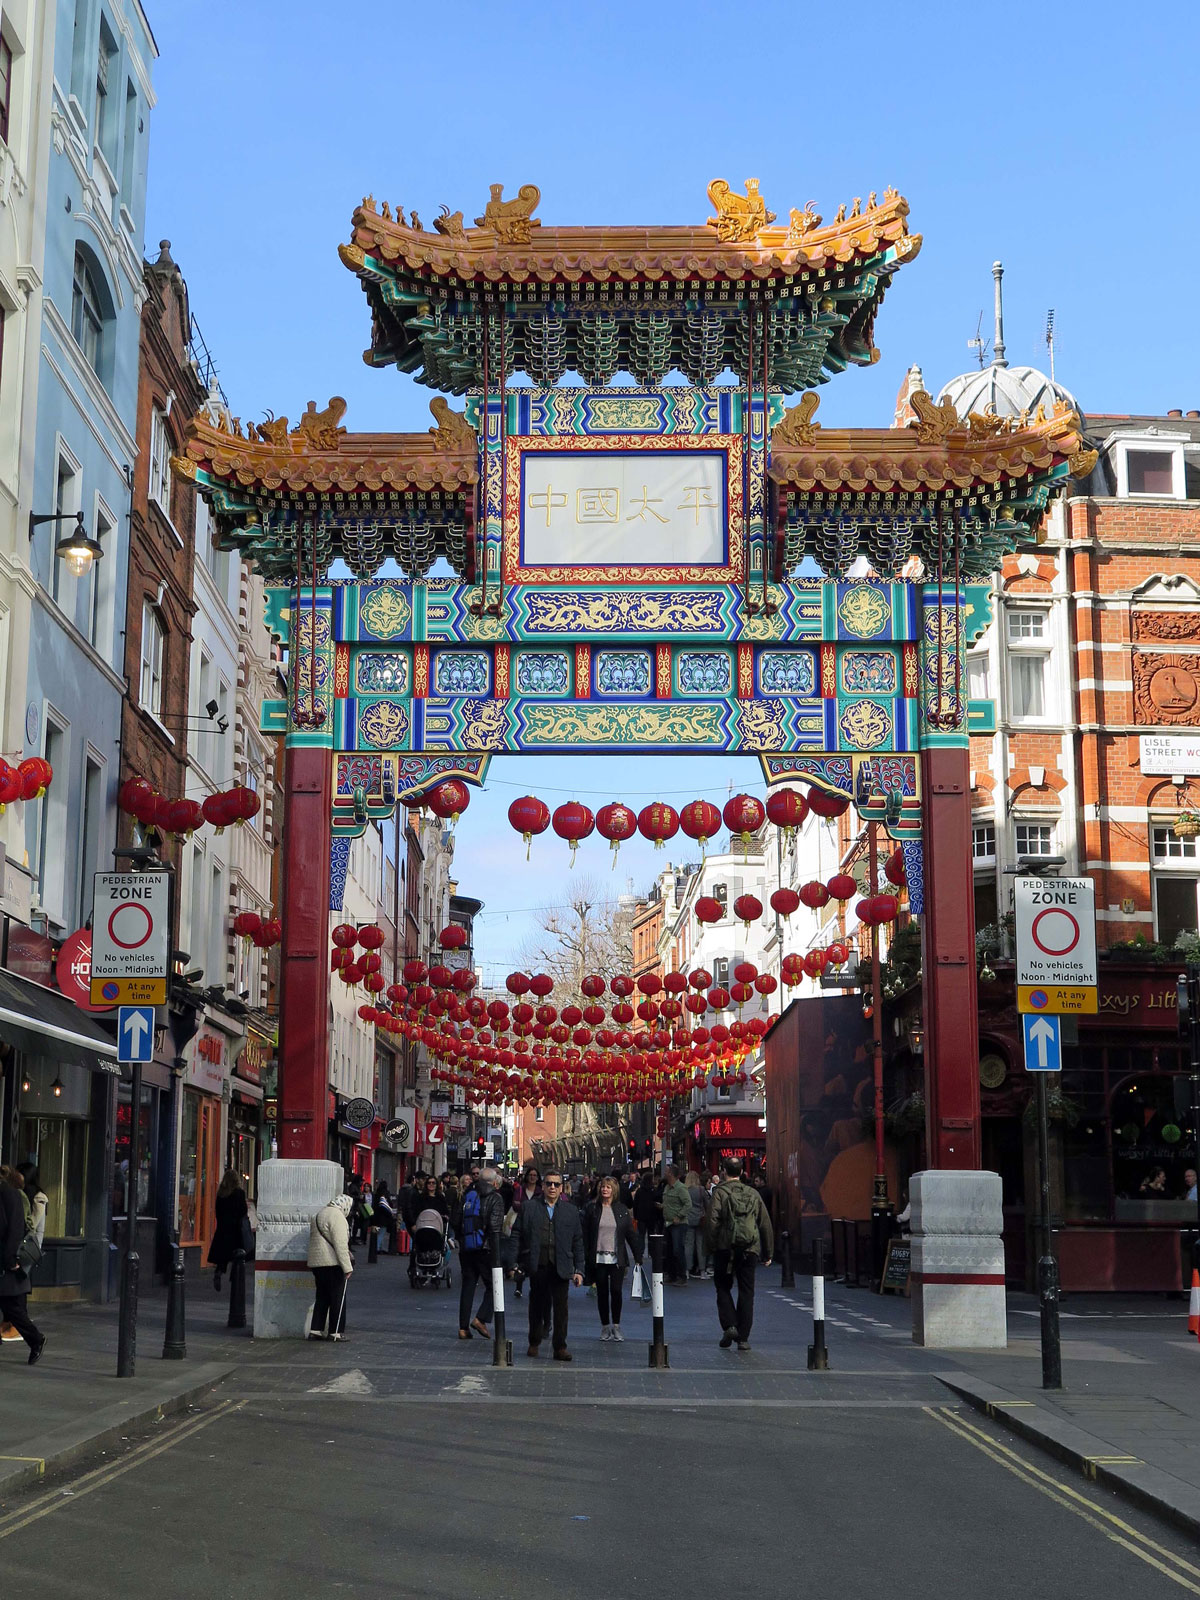 The Chinese Gate in Wardour St